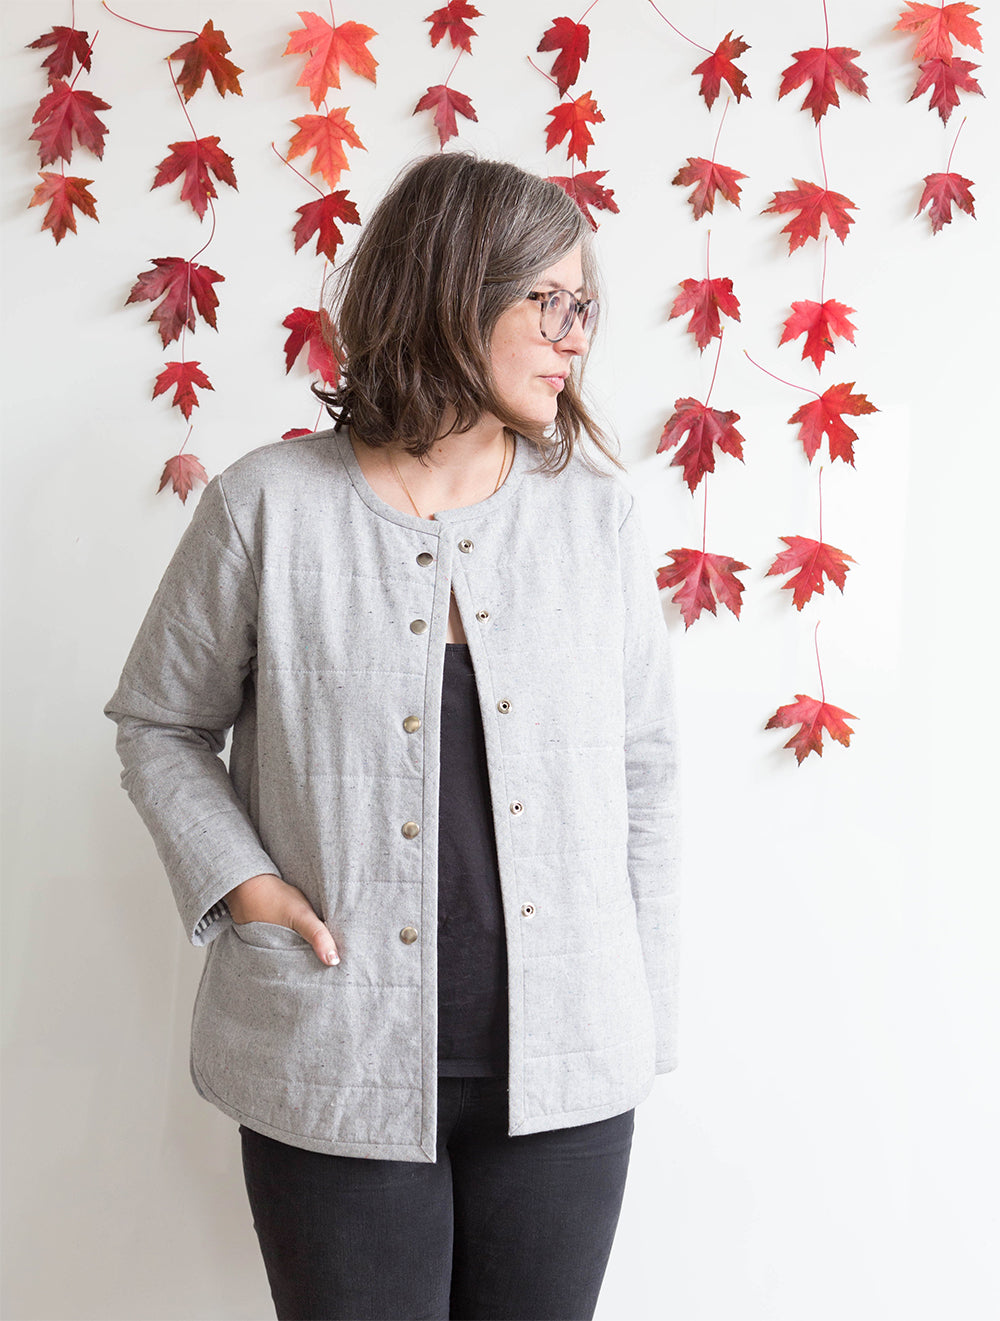 Tamarack Jacket in Print | Grainline Studio